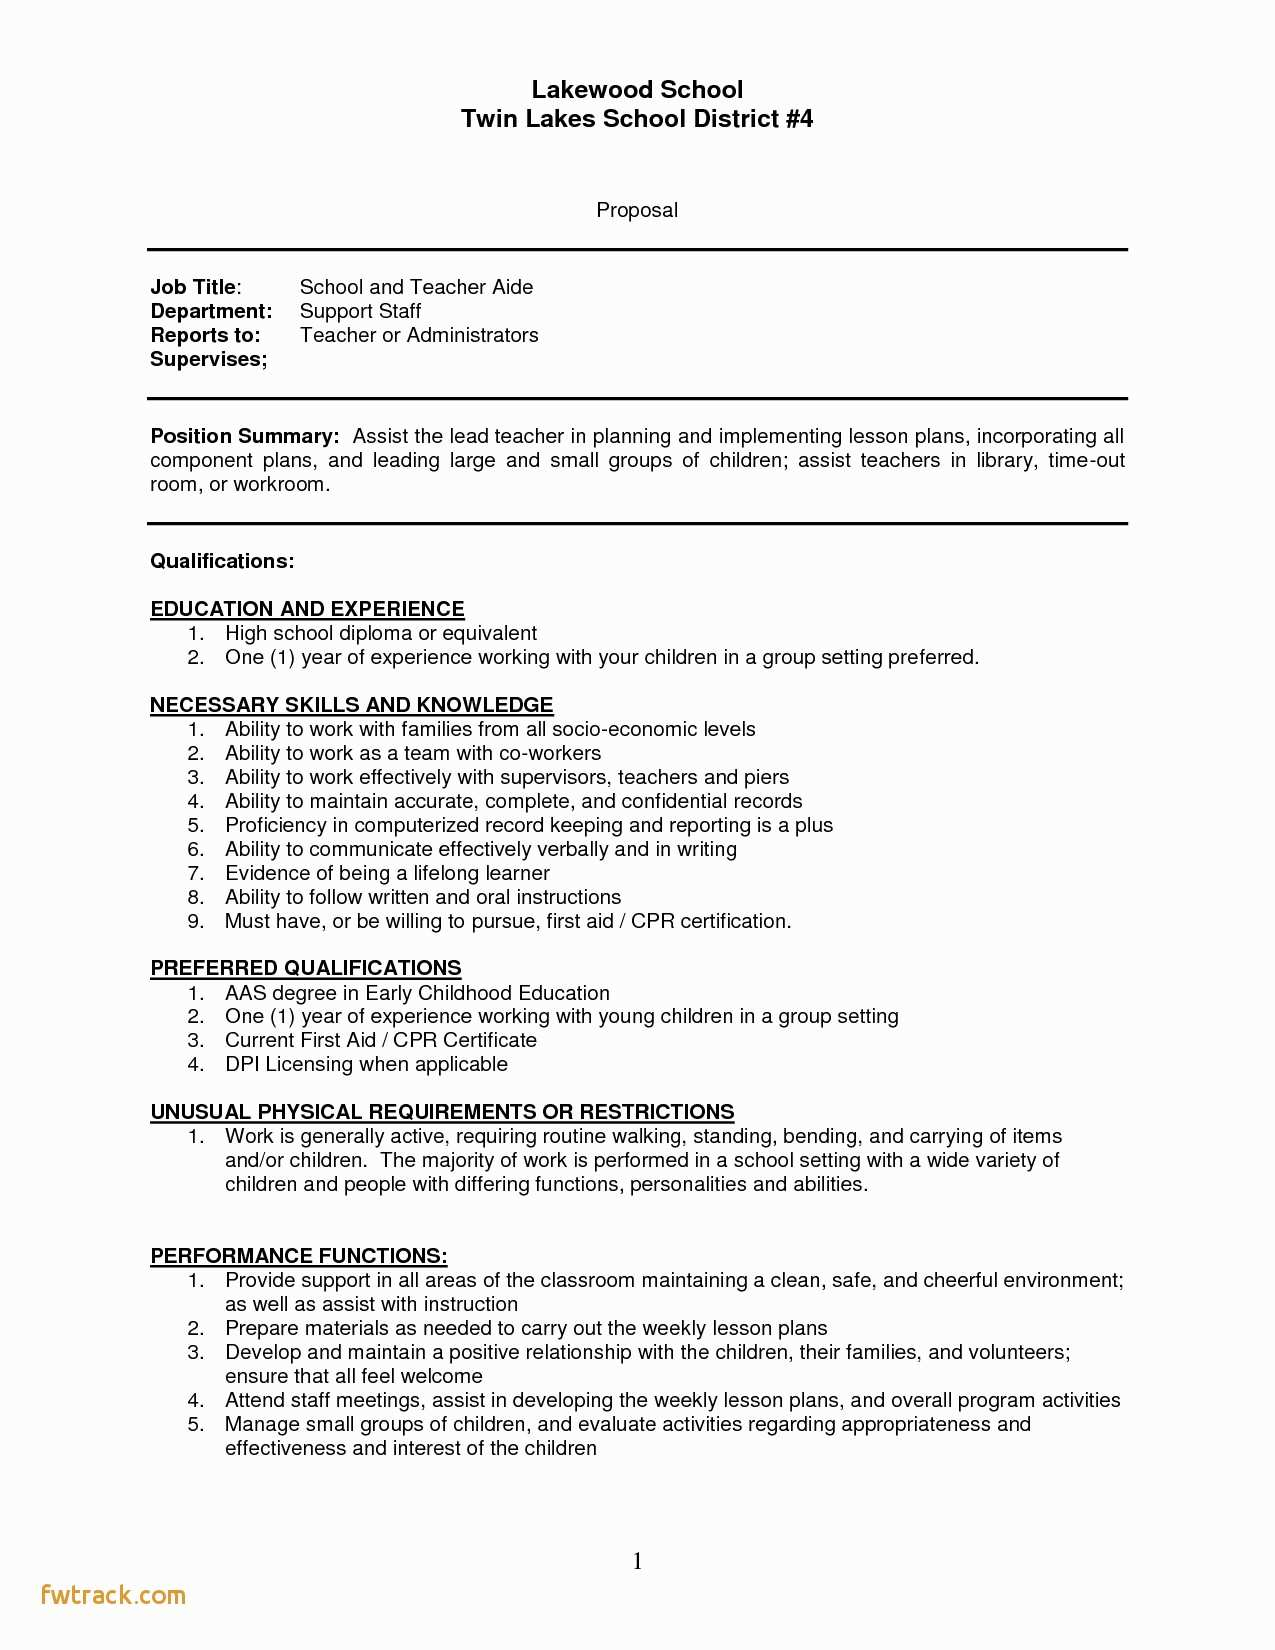 Illustrator Resume Templates - Resume Template for Teachers Fwtrack Fwtrack